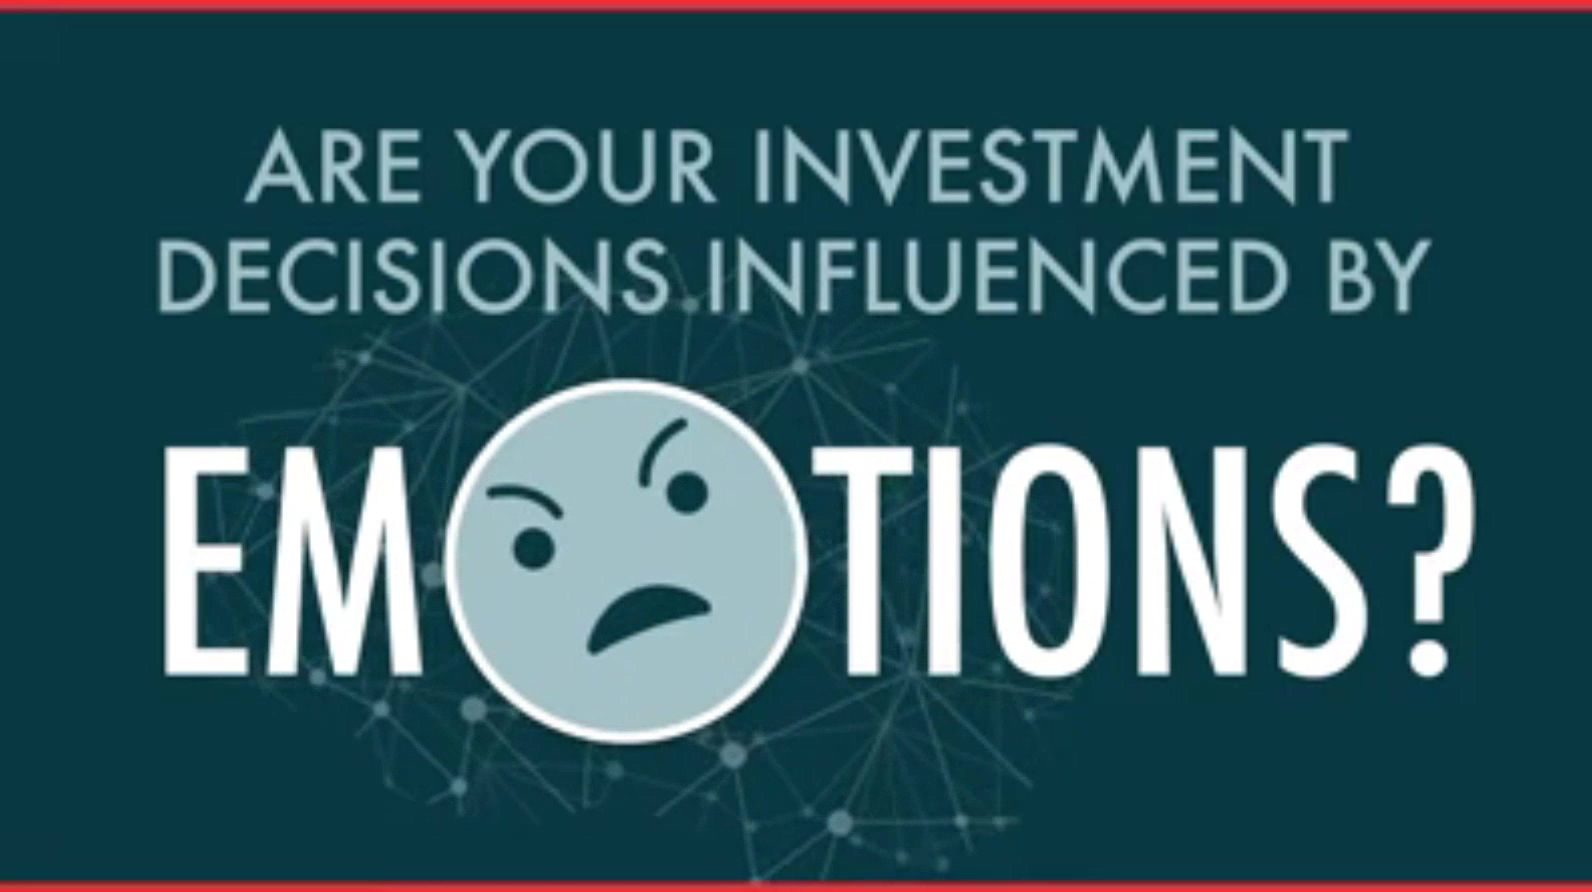 1- Good Are Your Investment Decisions Influenced By Emotions